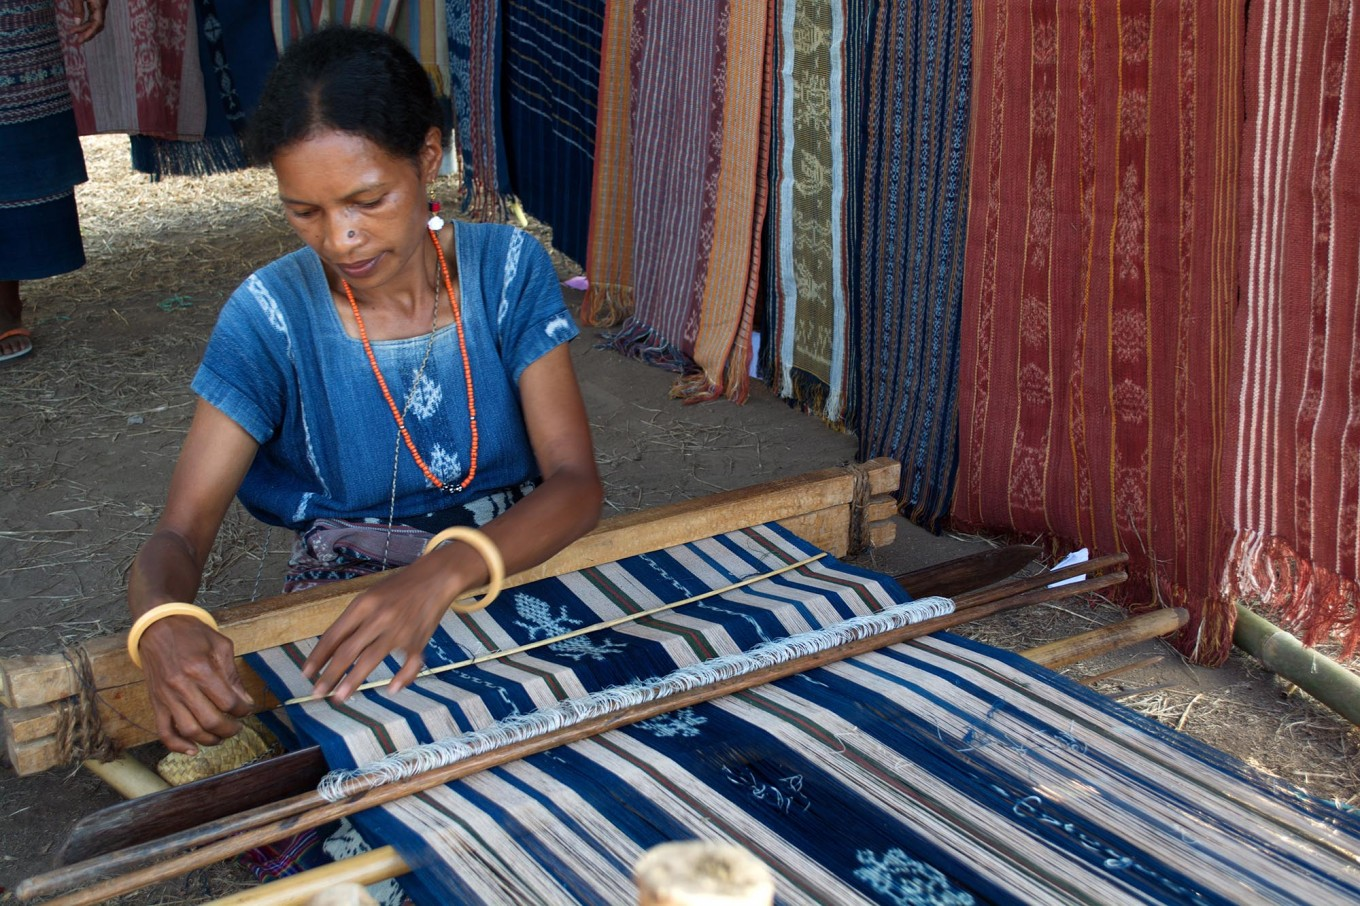 Sikka women can weave beautiful ikat cloth, enhancing them with colorful motifs even without a manual. This blue-white strip featuring a gecko motif in the making is the most popular motif of Sikka's ikat cloths. JP/Intan Tanjung